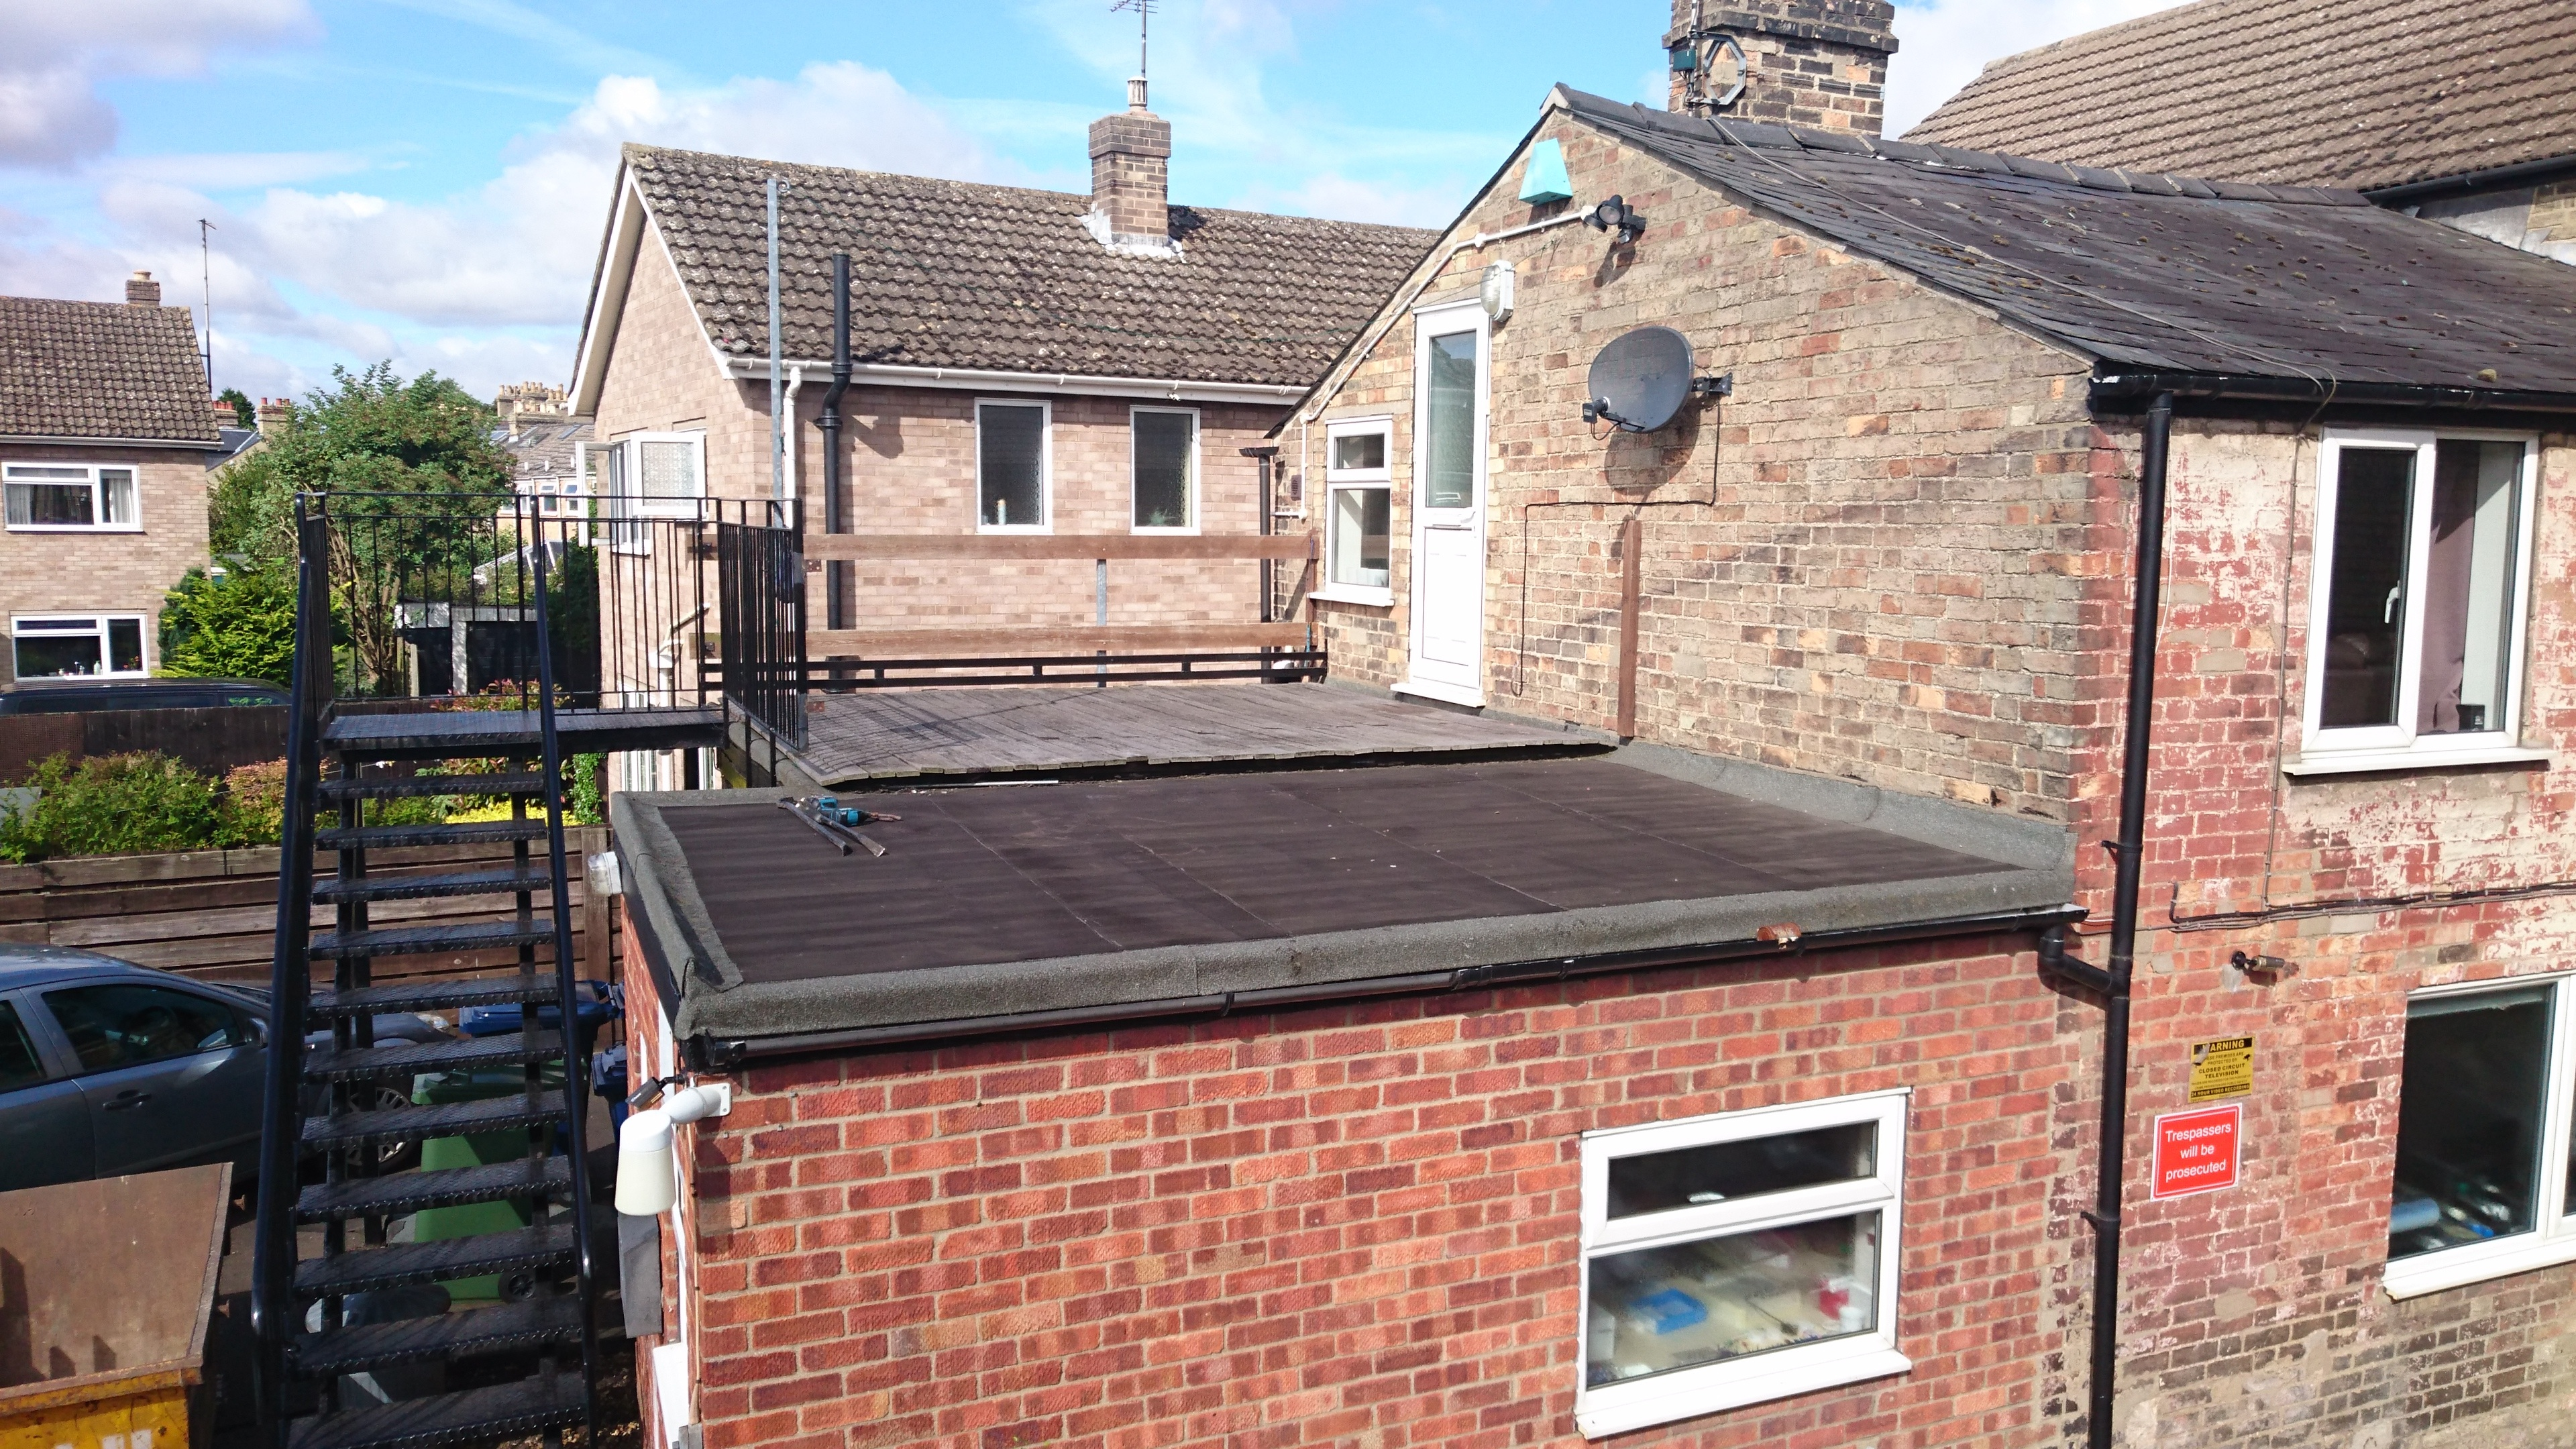 Fibreglass Roof Replacement In Cambridge Grp Roofing